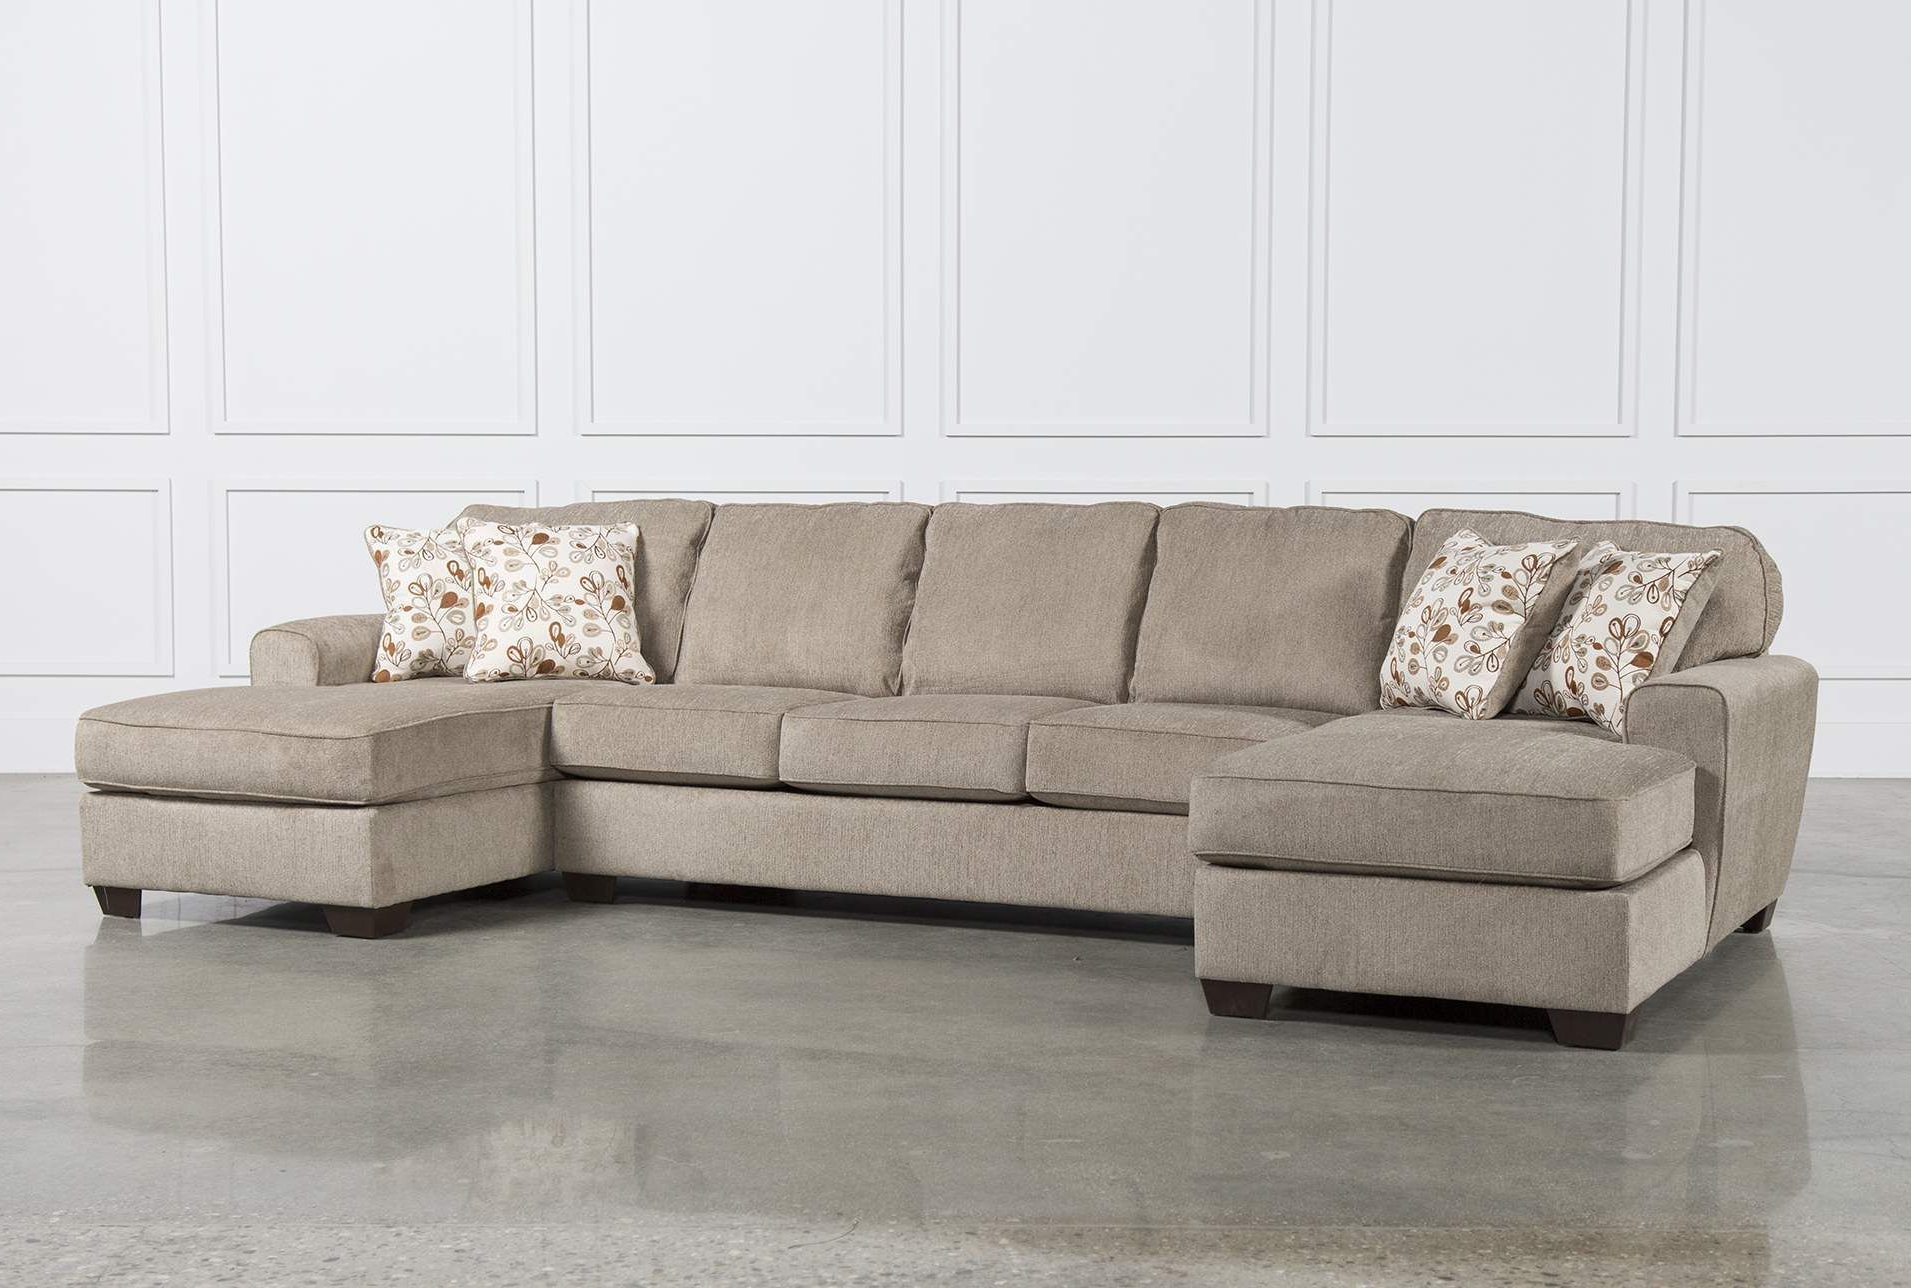 Well Known Malbry Point 3 Piece Sectionals With Raf Chaise Intended For Ashley Patola Park 3 Piece Sectional W/2 Corner Chaises, Brown (View 20 of 20)